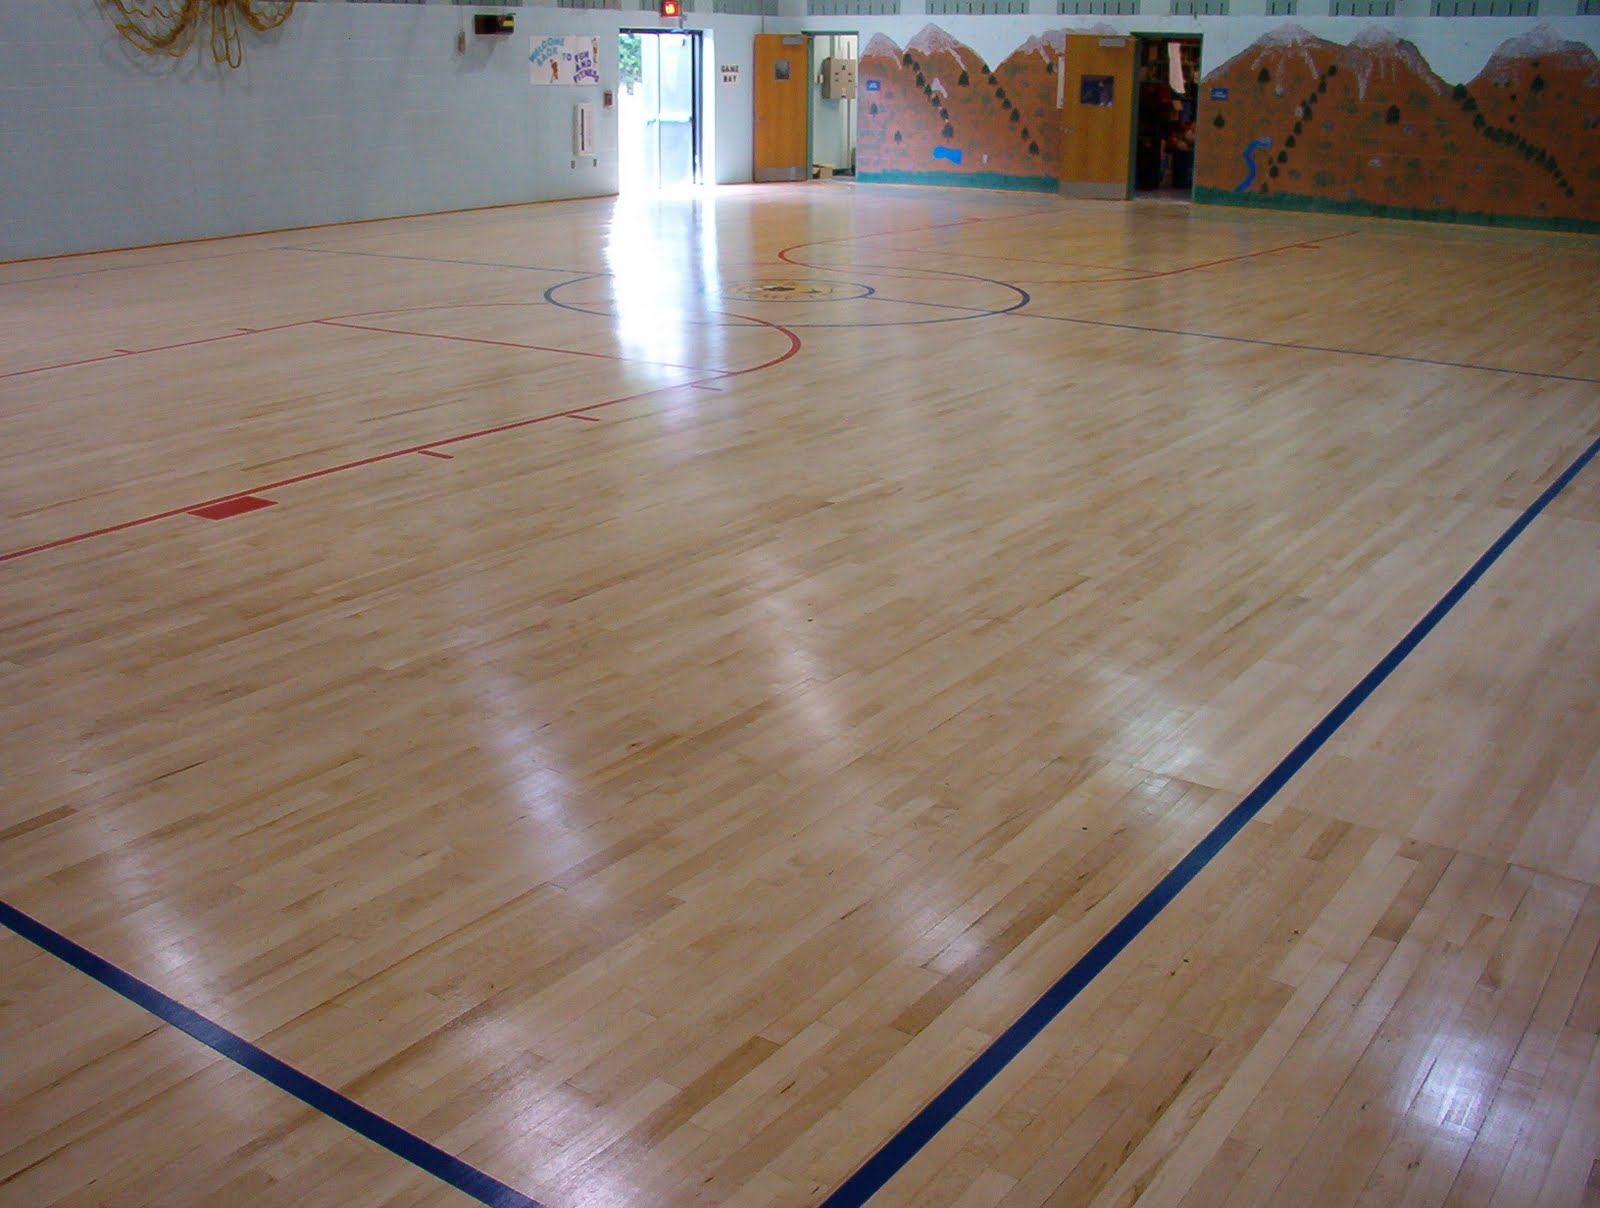 Applegate wood floors blog featured project new maple for Gym flooring